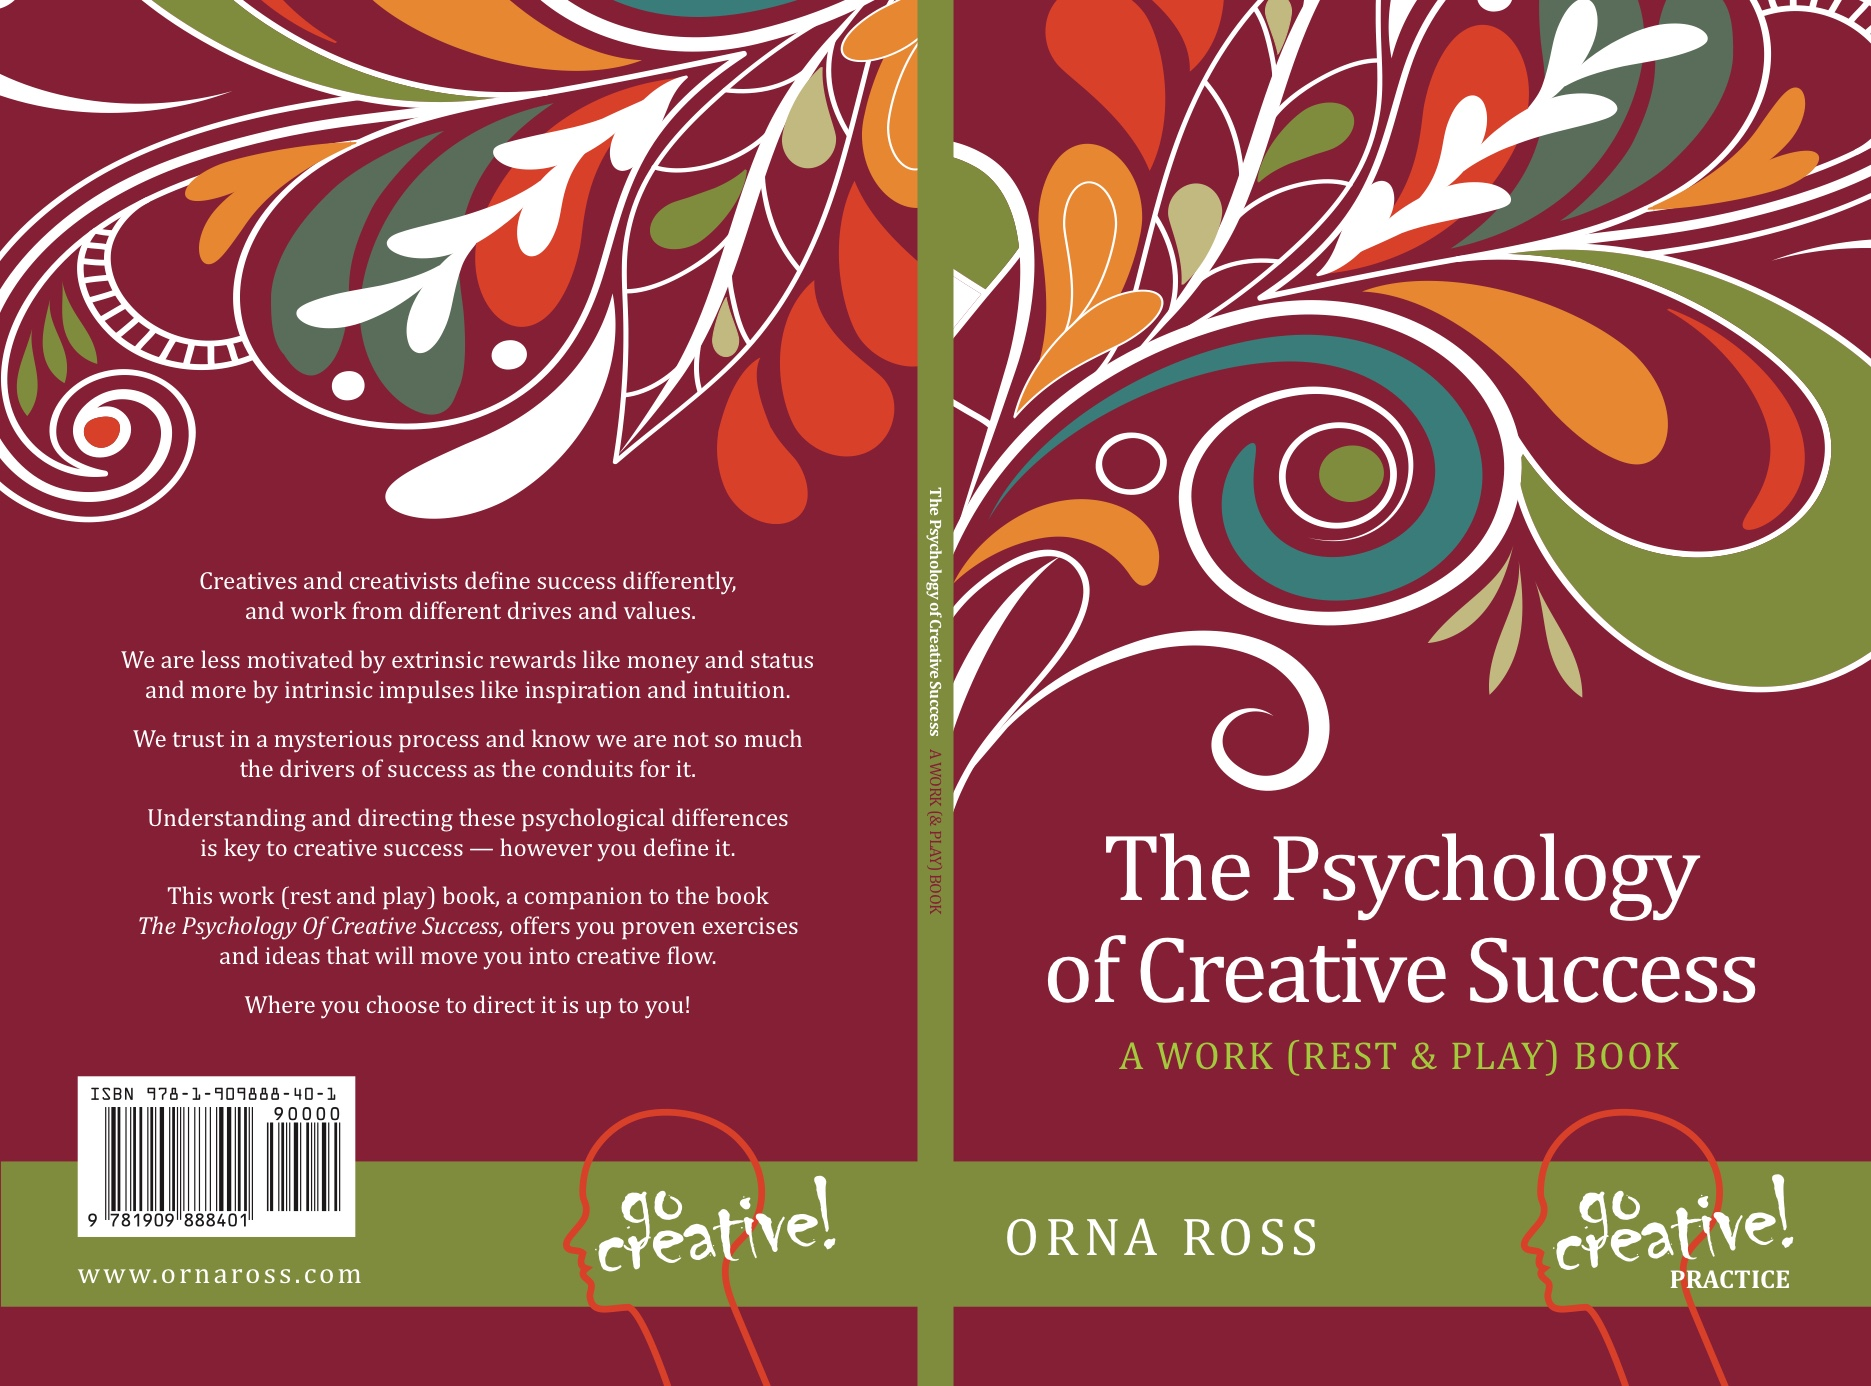 Today's Book Extract: From The Psychology of Creative Success